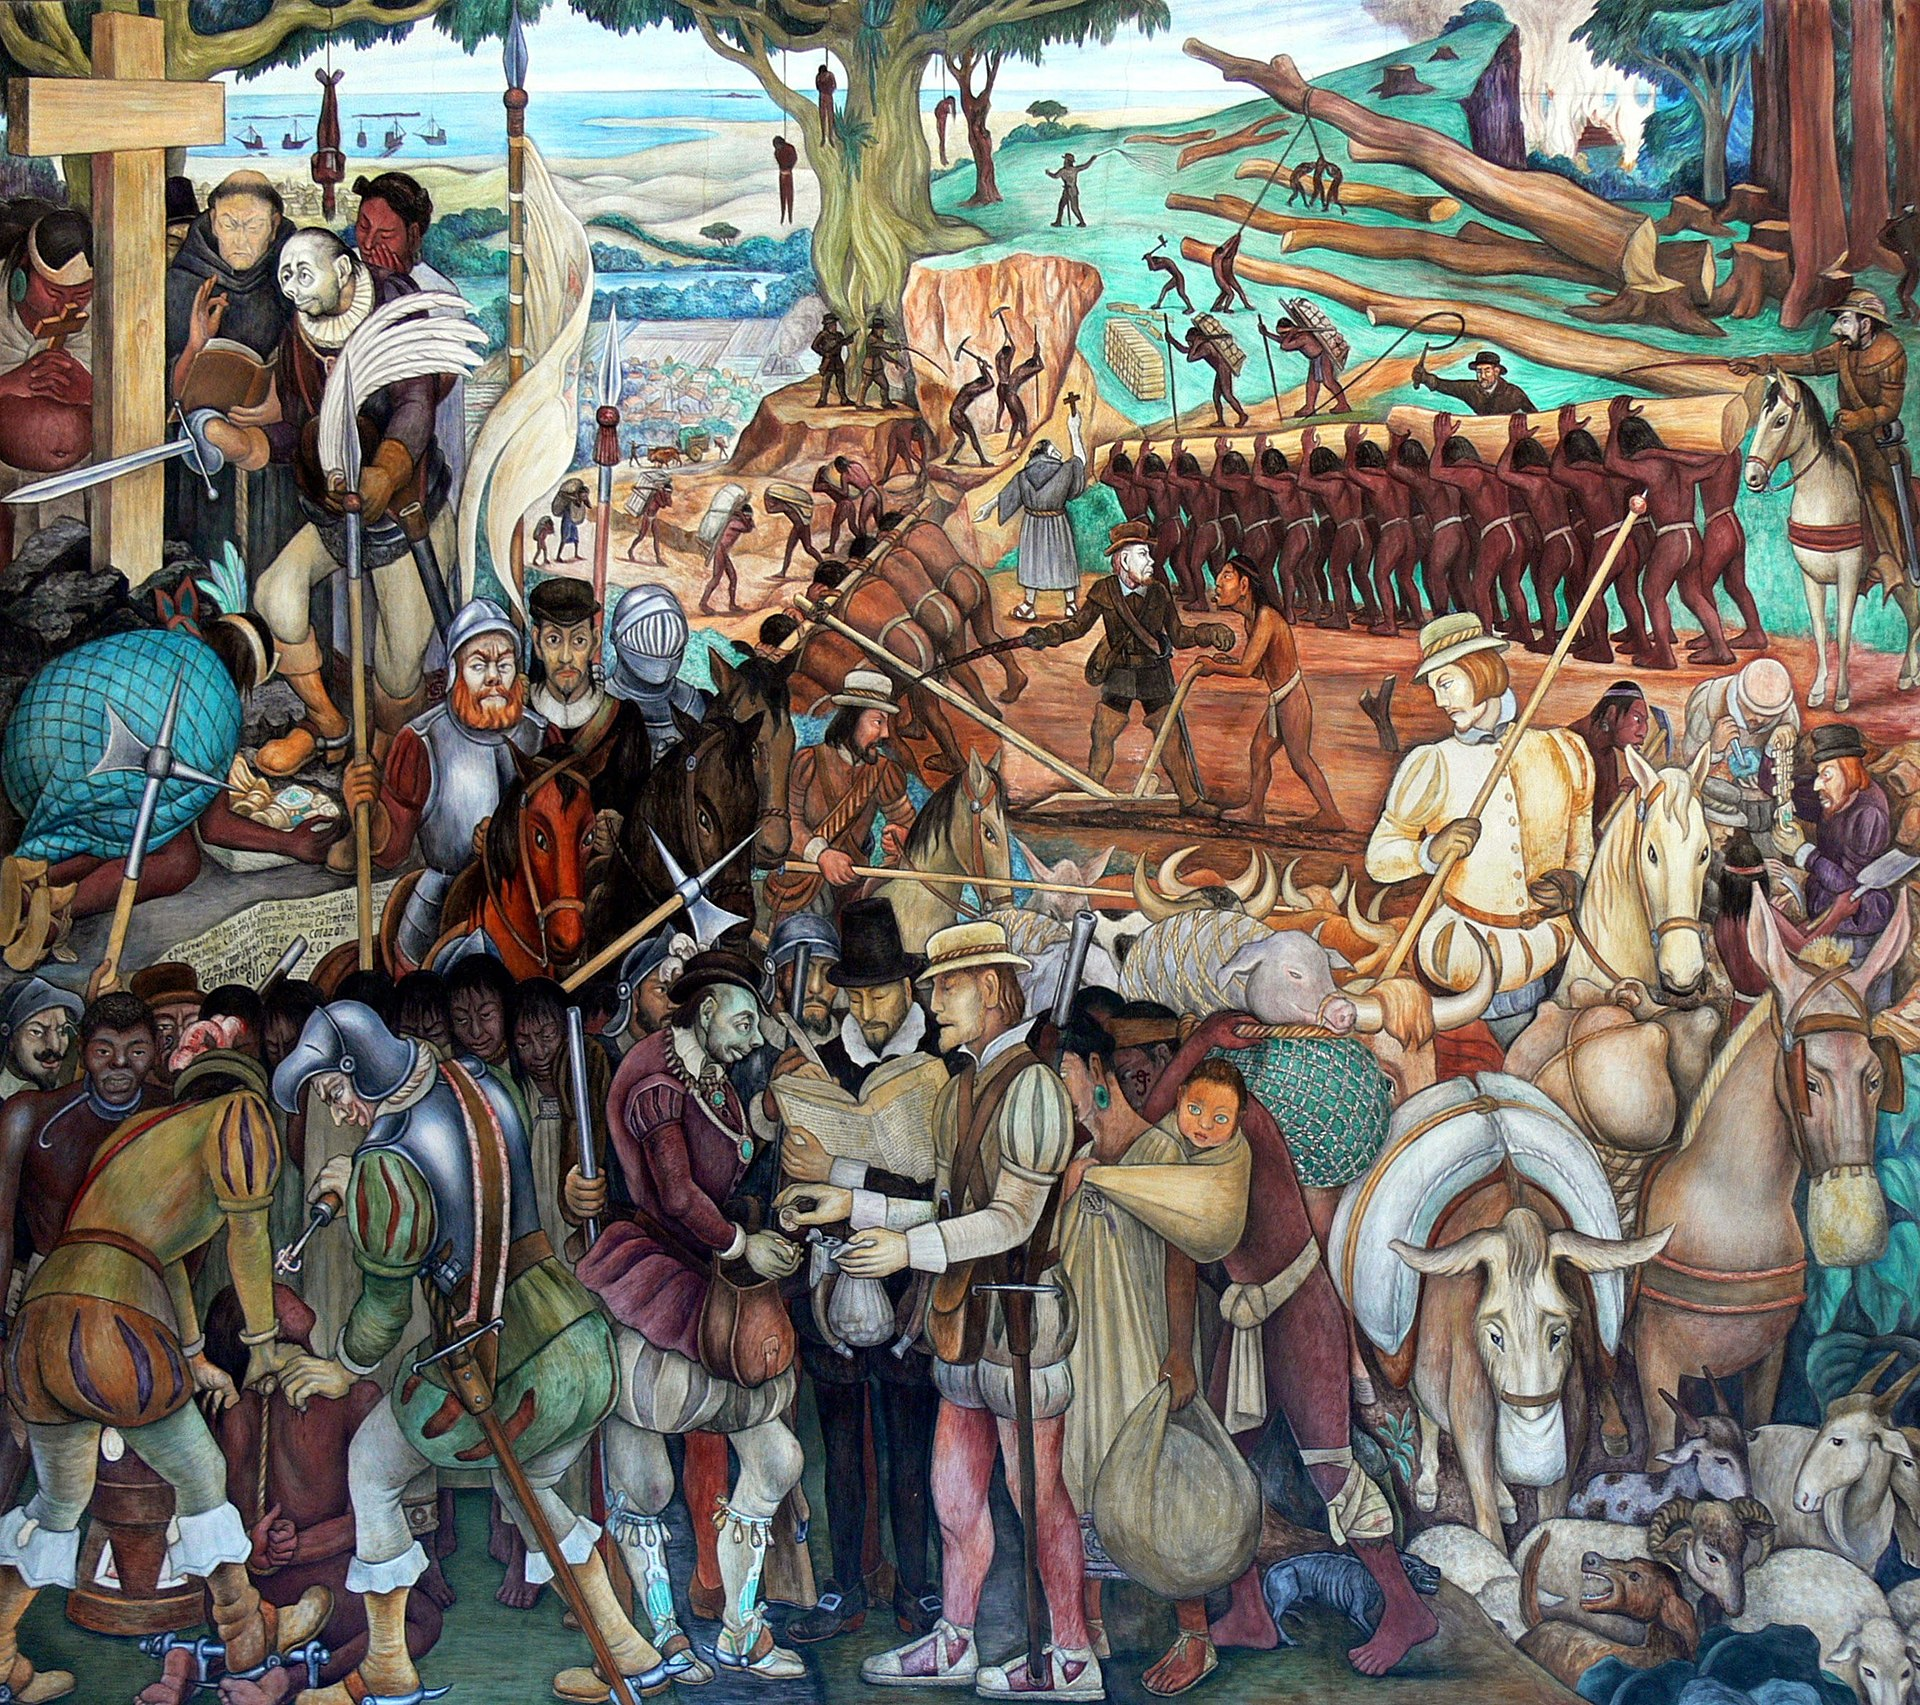 Diego Rivera - Mural of exploitation of Mexico by Spanish conquistadors, Palacio Nacional, Mexico City